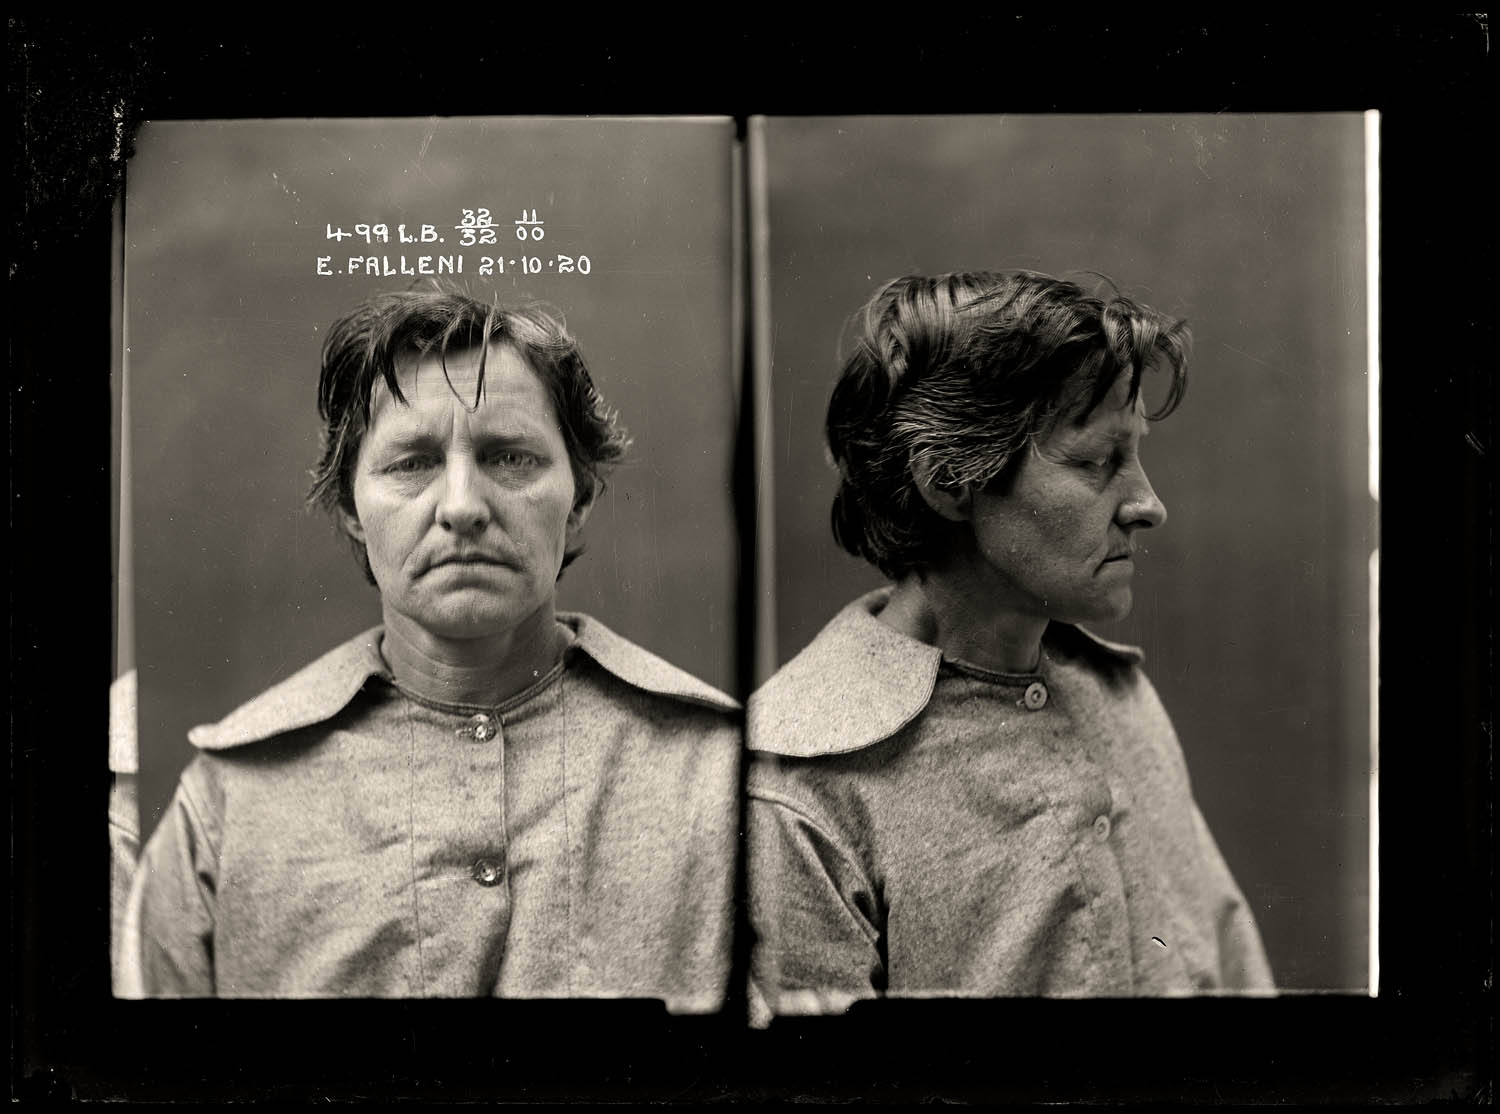 Eugenia Falleni, alias Harry Crawford, criminal record number 499LB, 21 October 1920. State Reformatory for Women, Long Bay, NSW